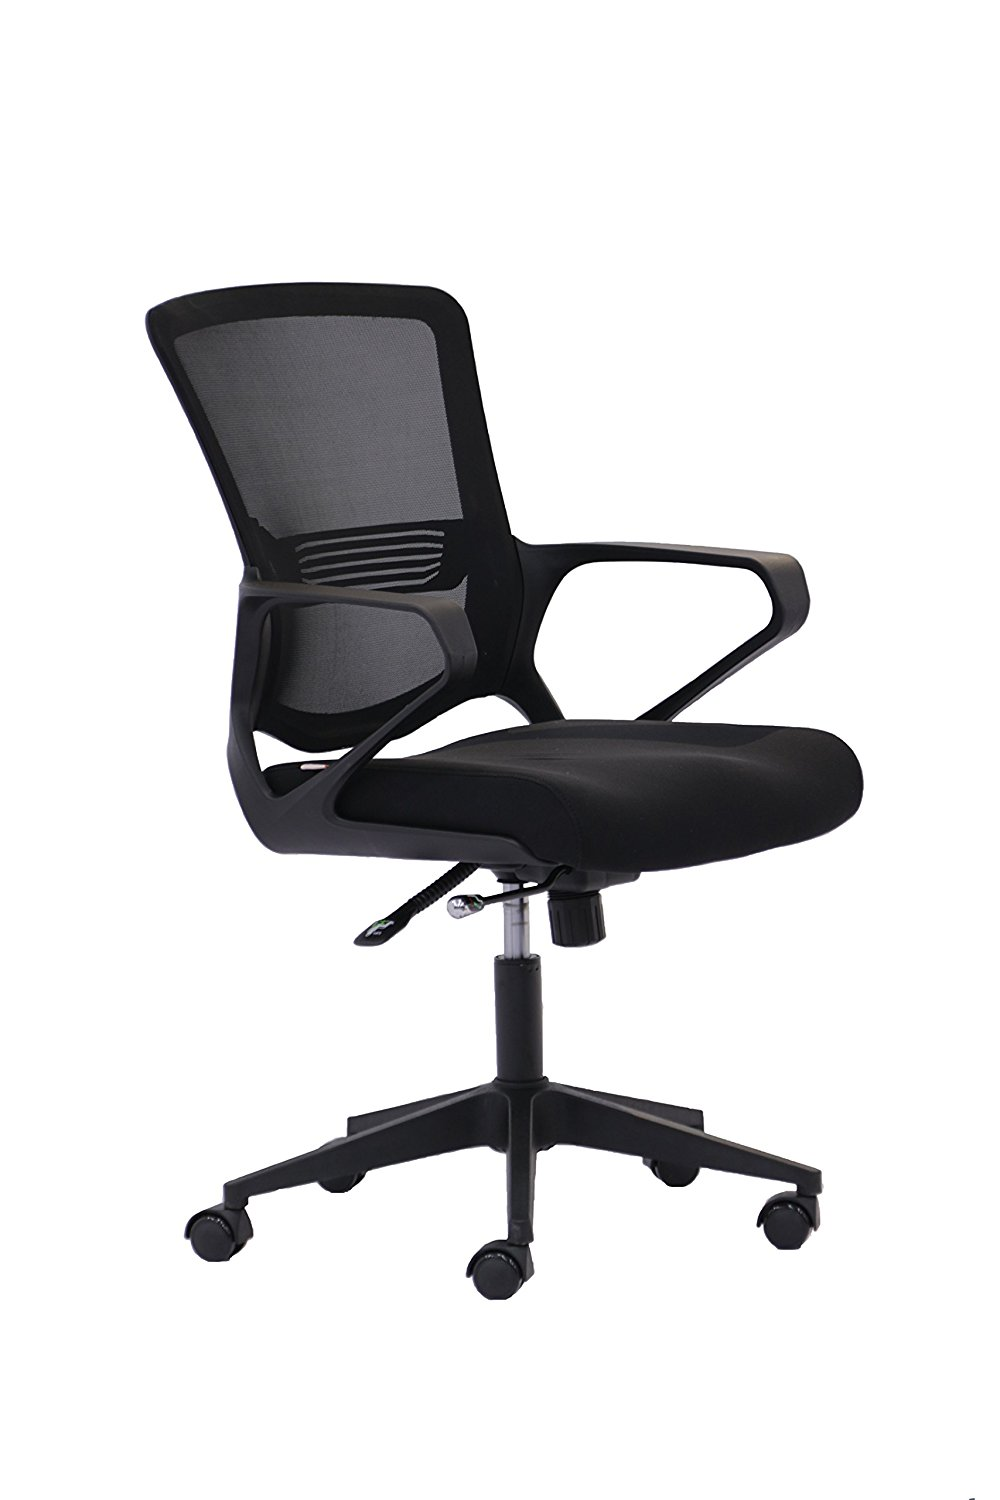 Peach PO200 Bürostuhl Office Chair schwarz